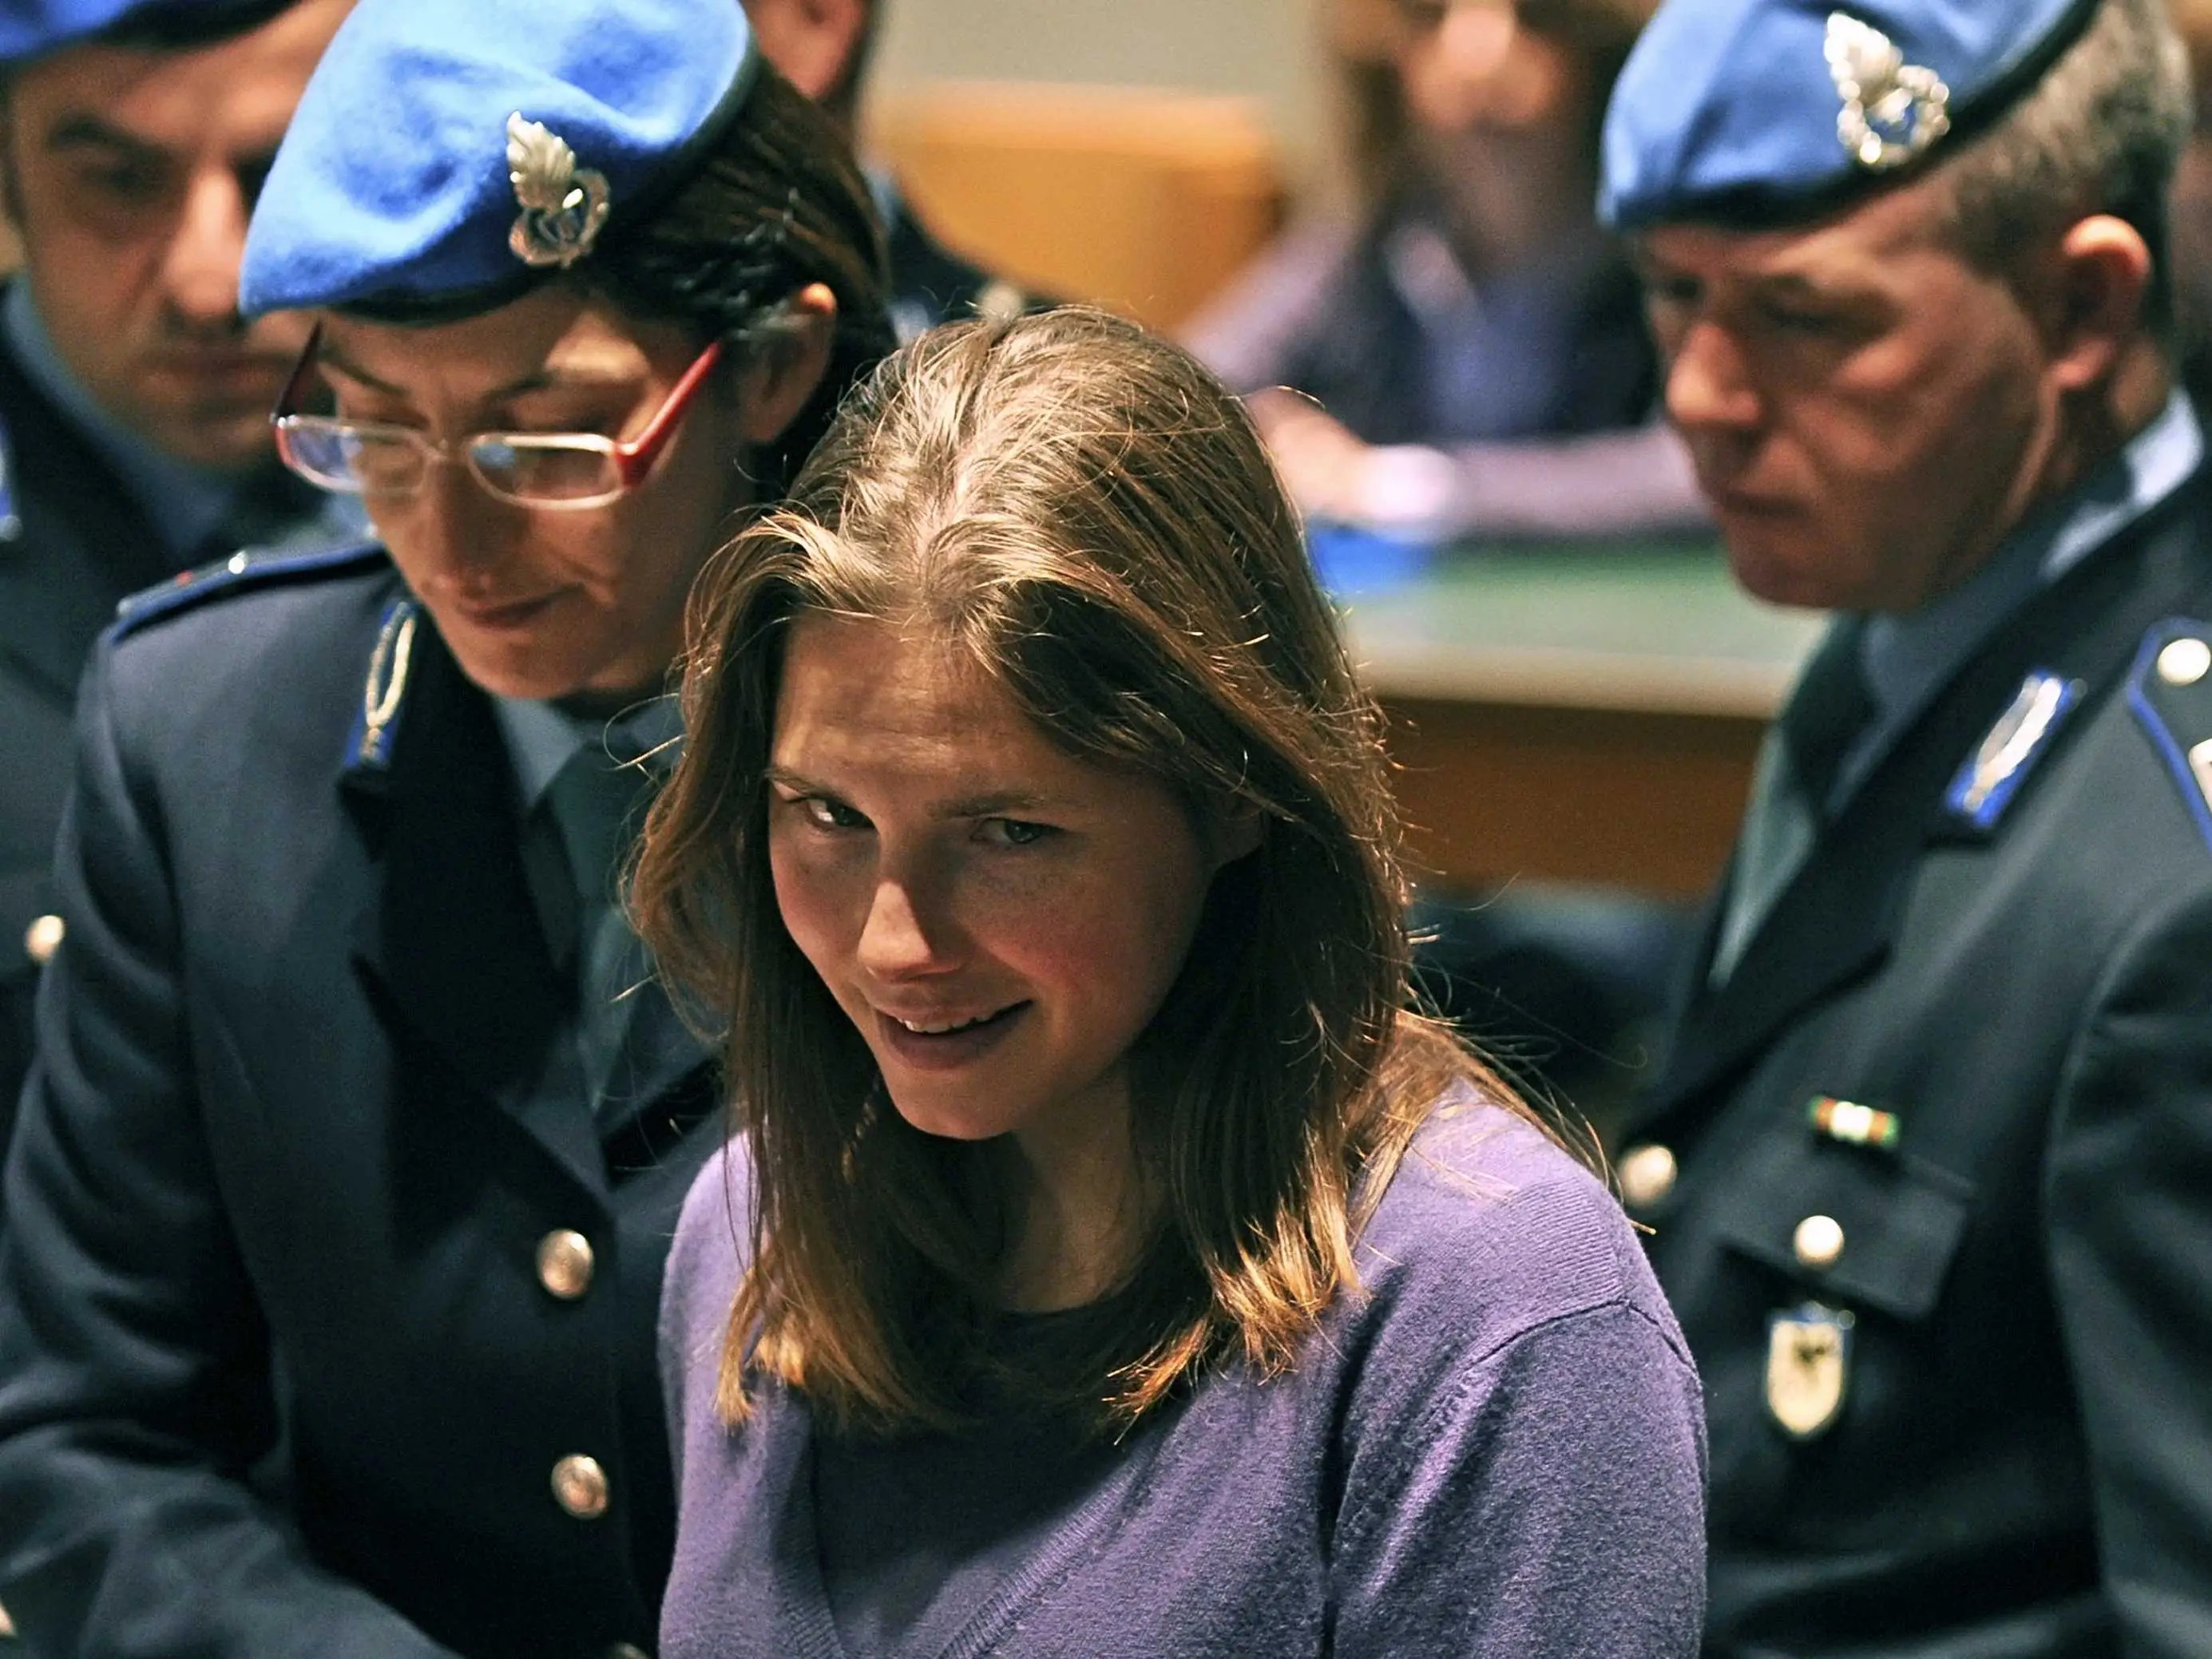 Image result for amanda knox during trial